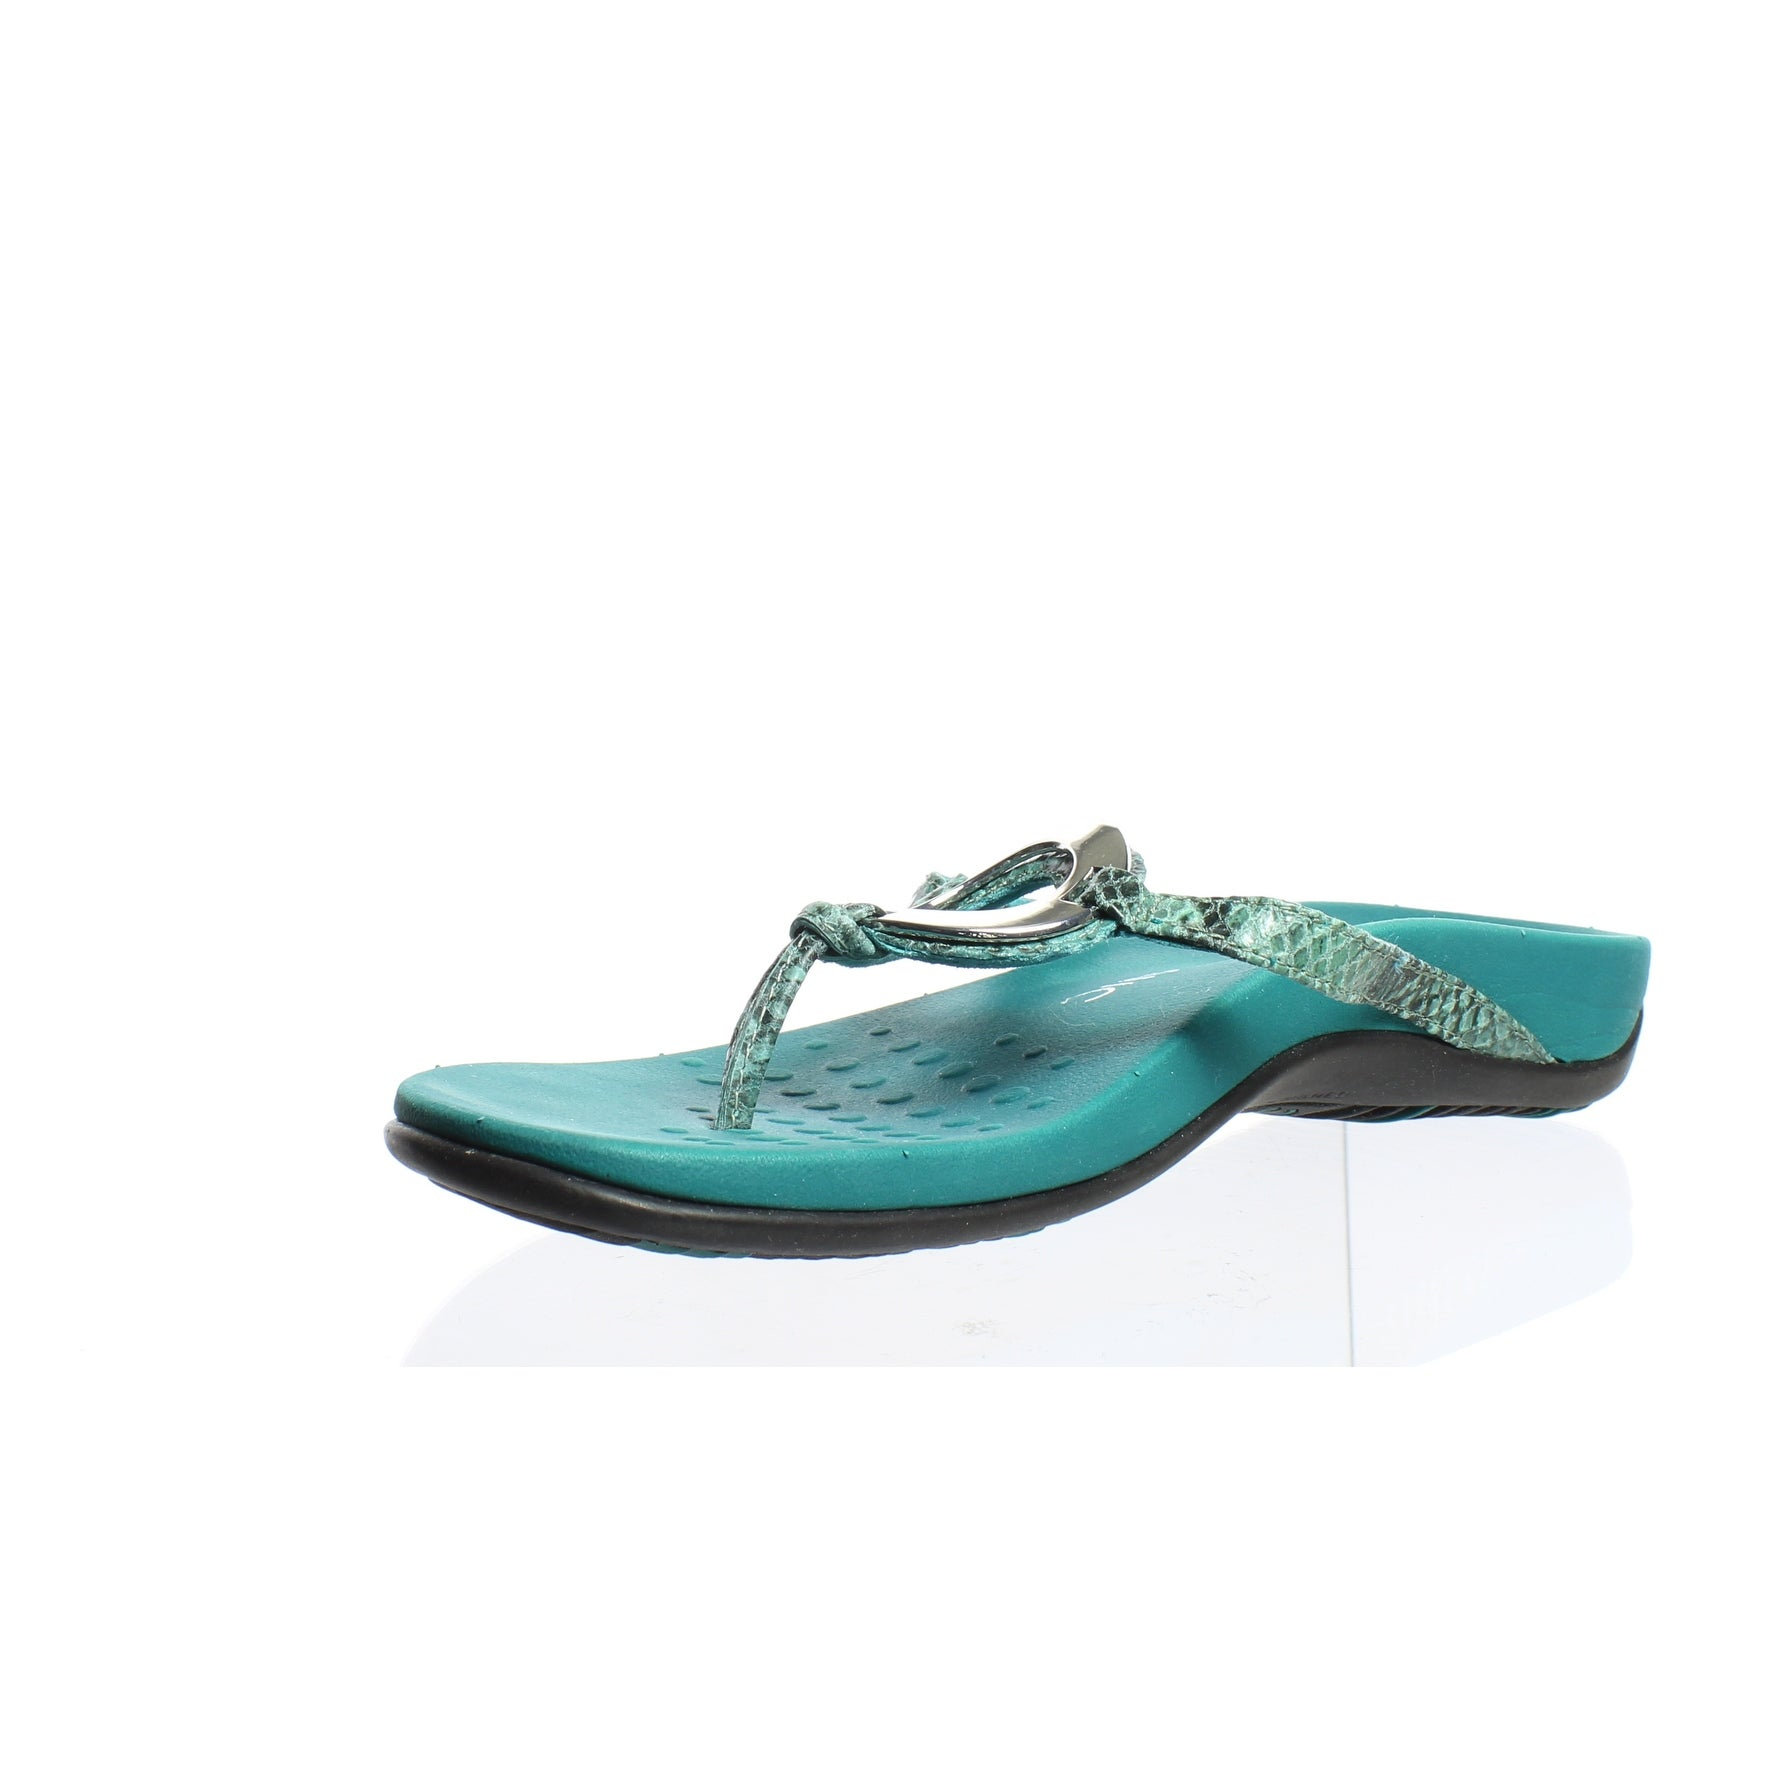 2592c5001dd9 Shop Vionic Womens Karina Teal Snake Flip Flops Size 7 - Free Shipping  Today - Overstock - 24209289